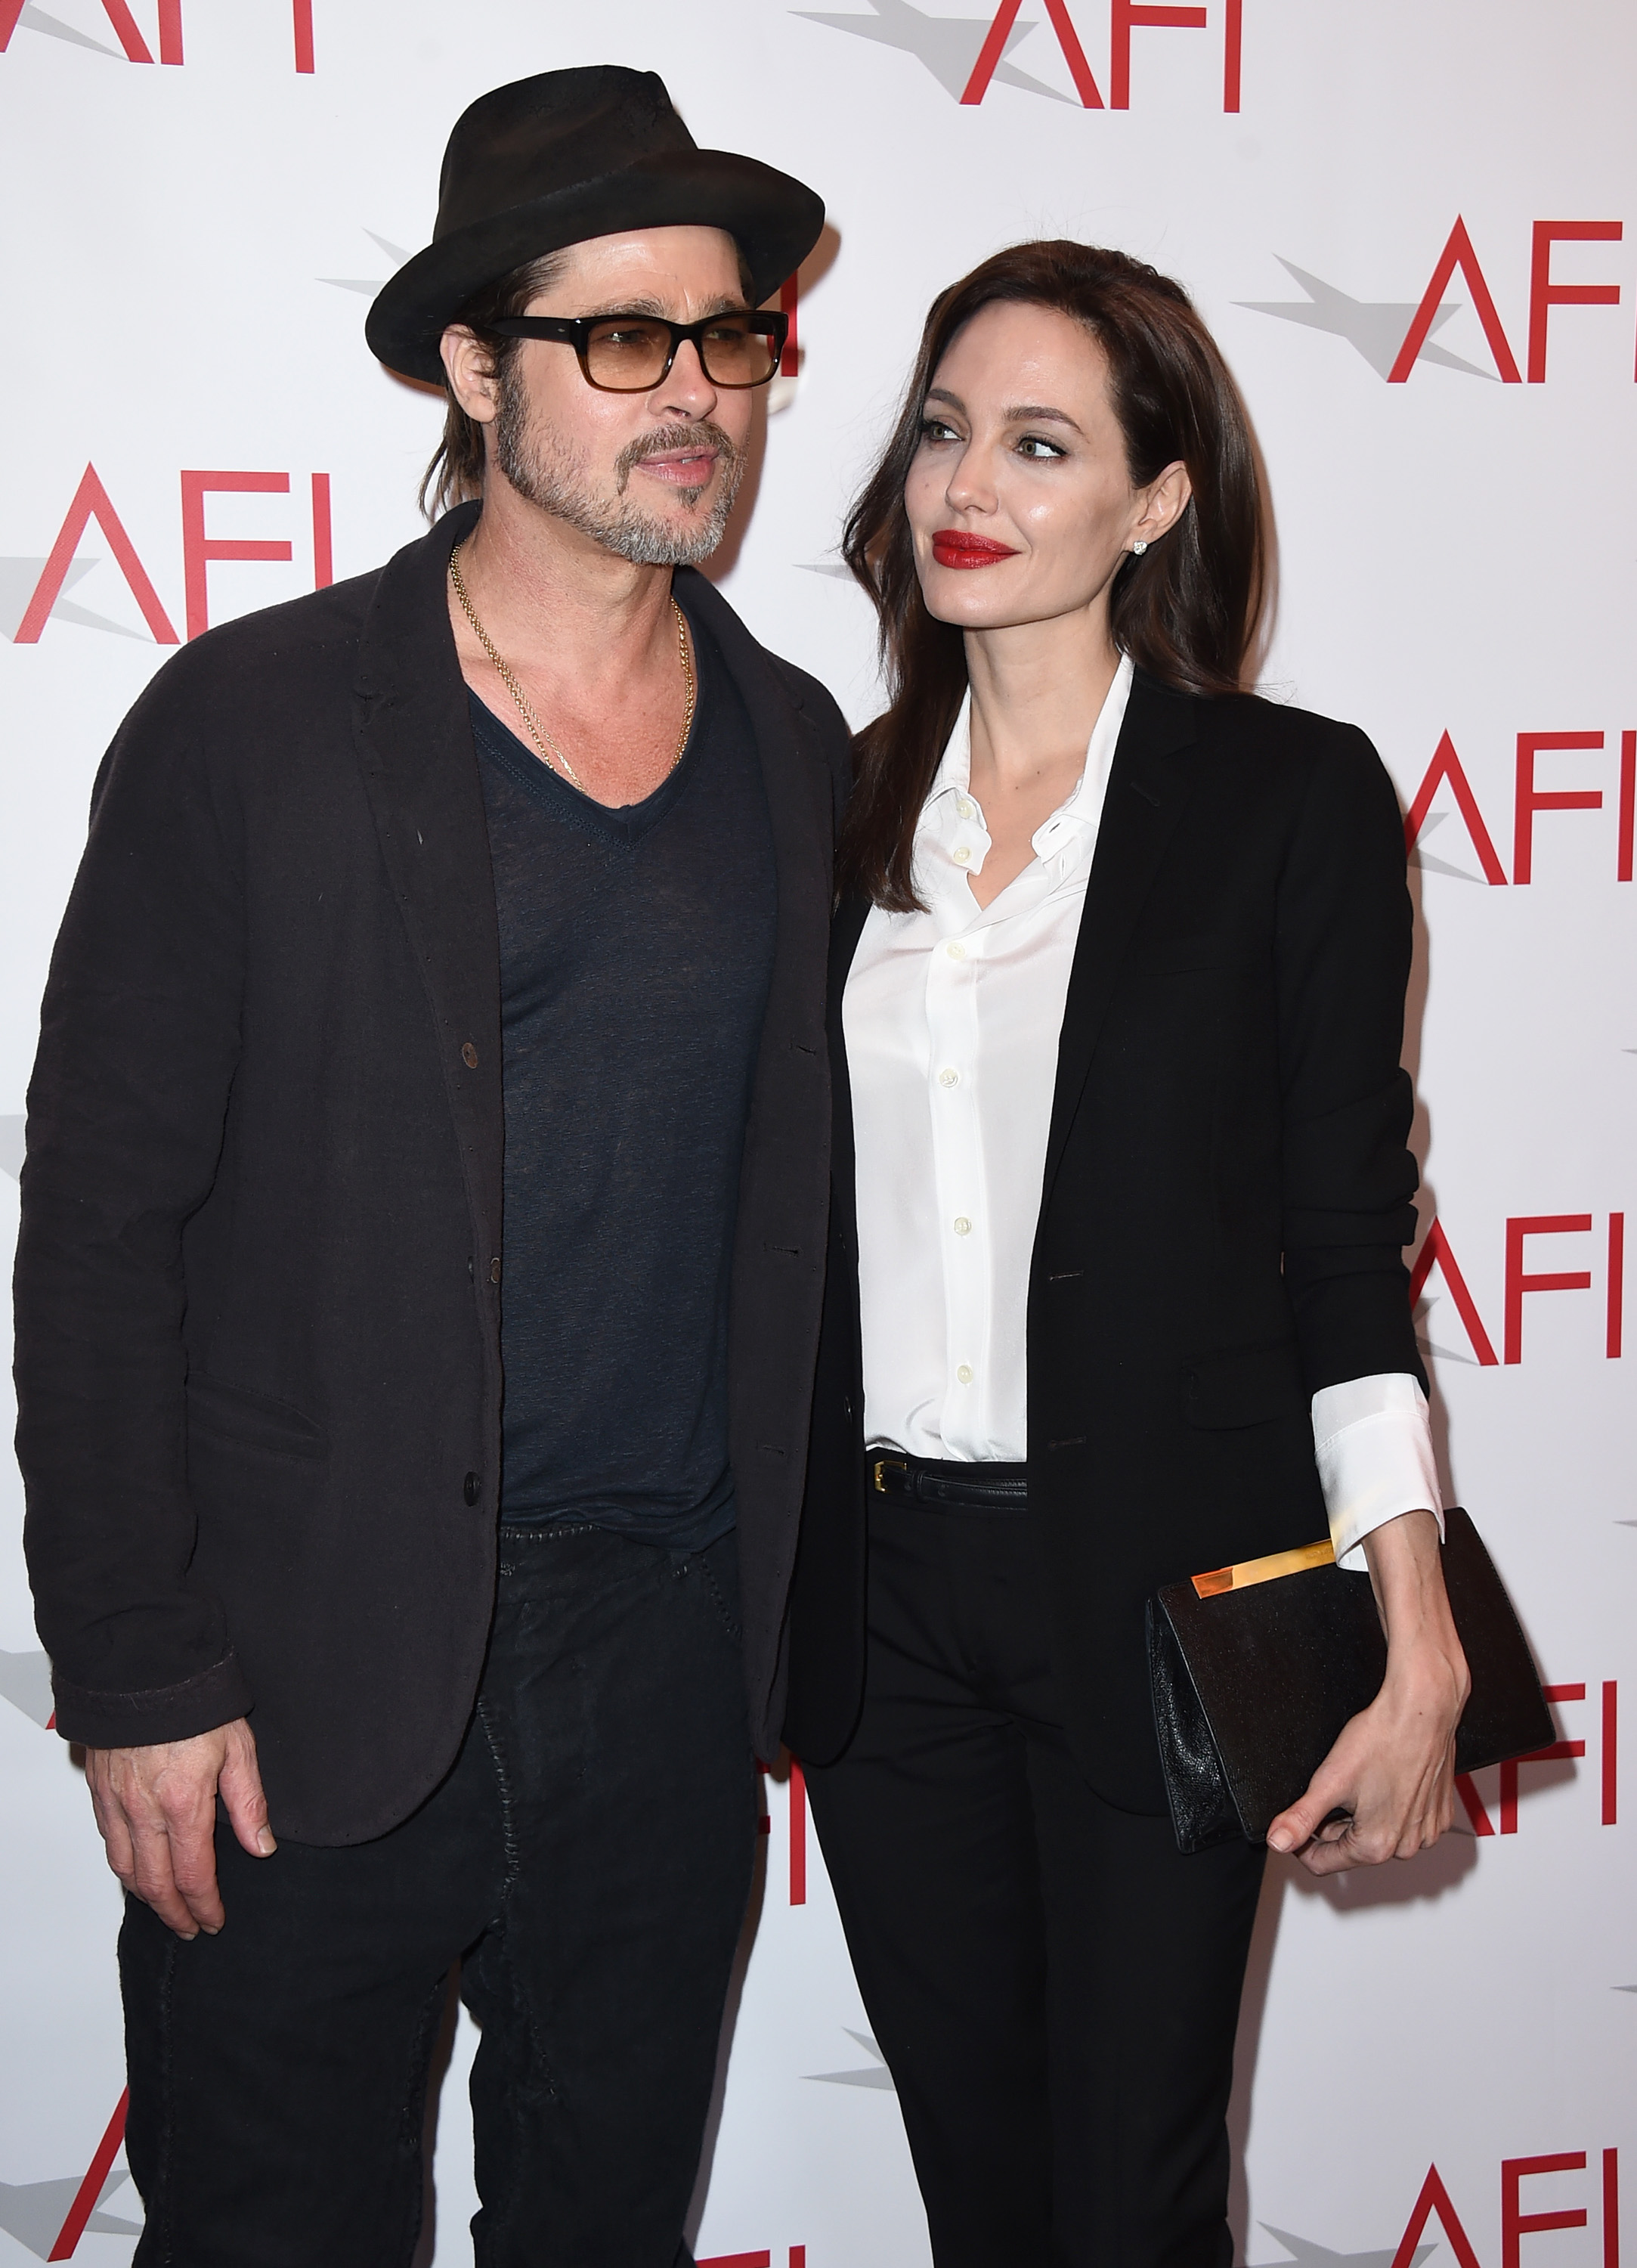 Brad Pitt, left, and Angelina Jolie arrive at the AFI Awards at the Four Seasons Hotel in Los Angeles on Jan. 9, 2015